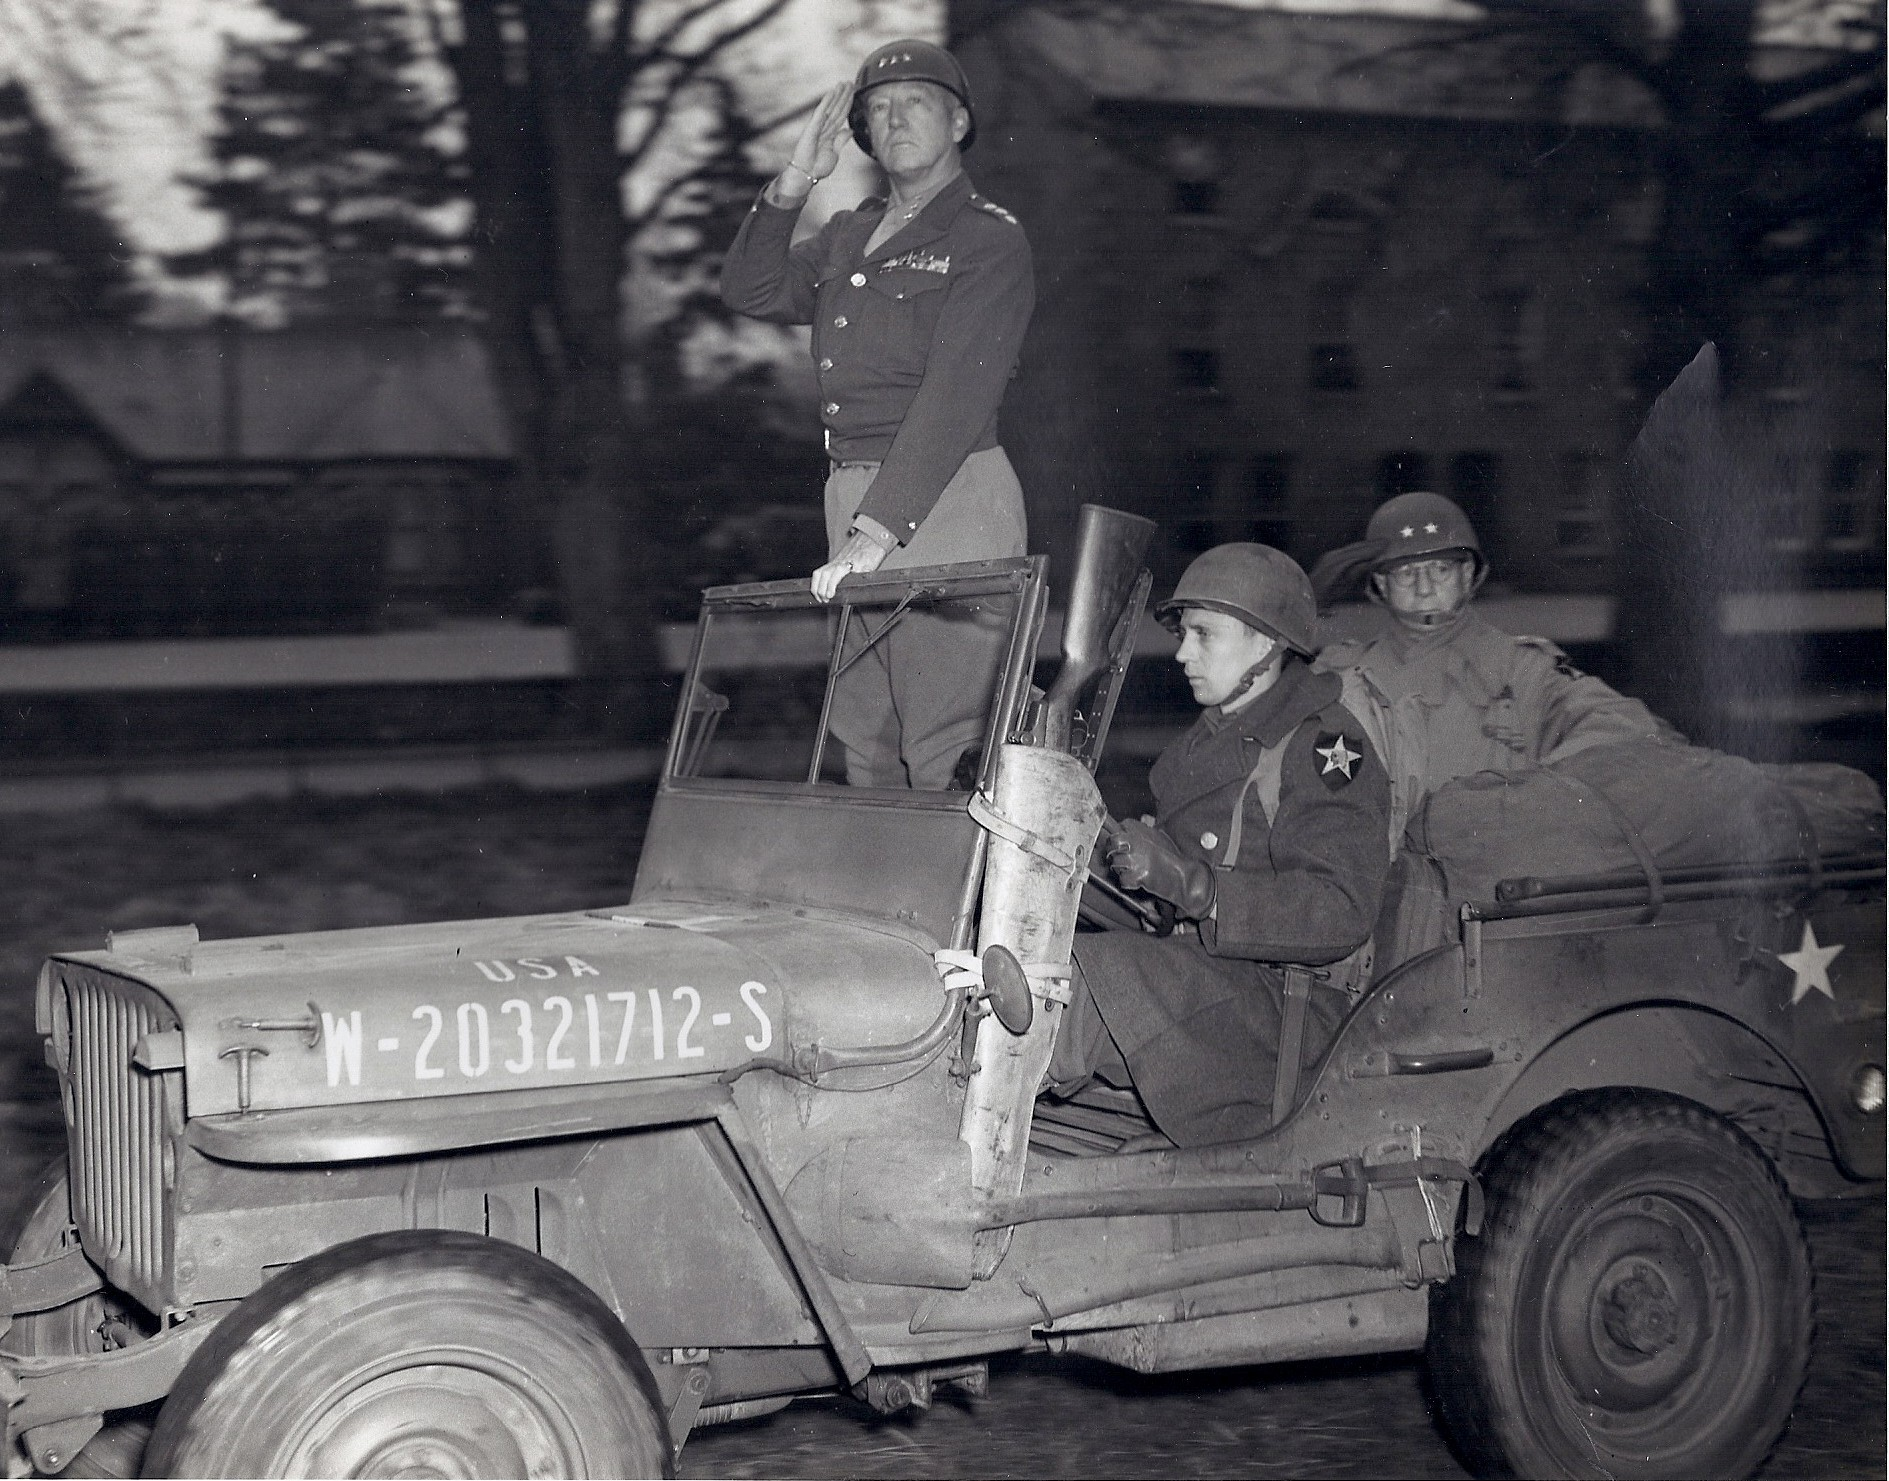 George patton jeep accident